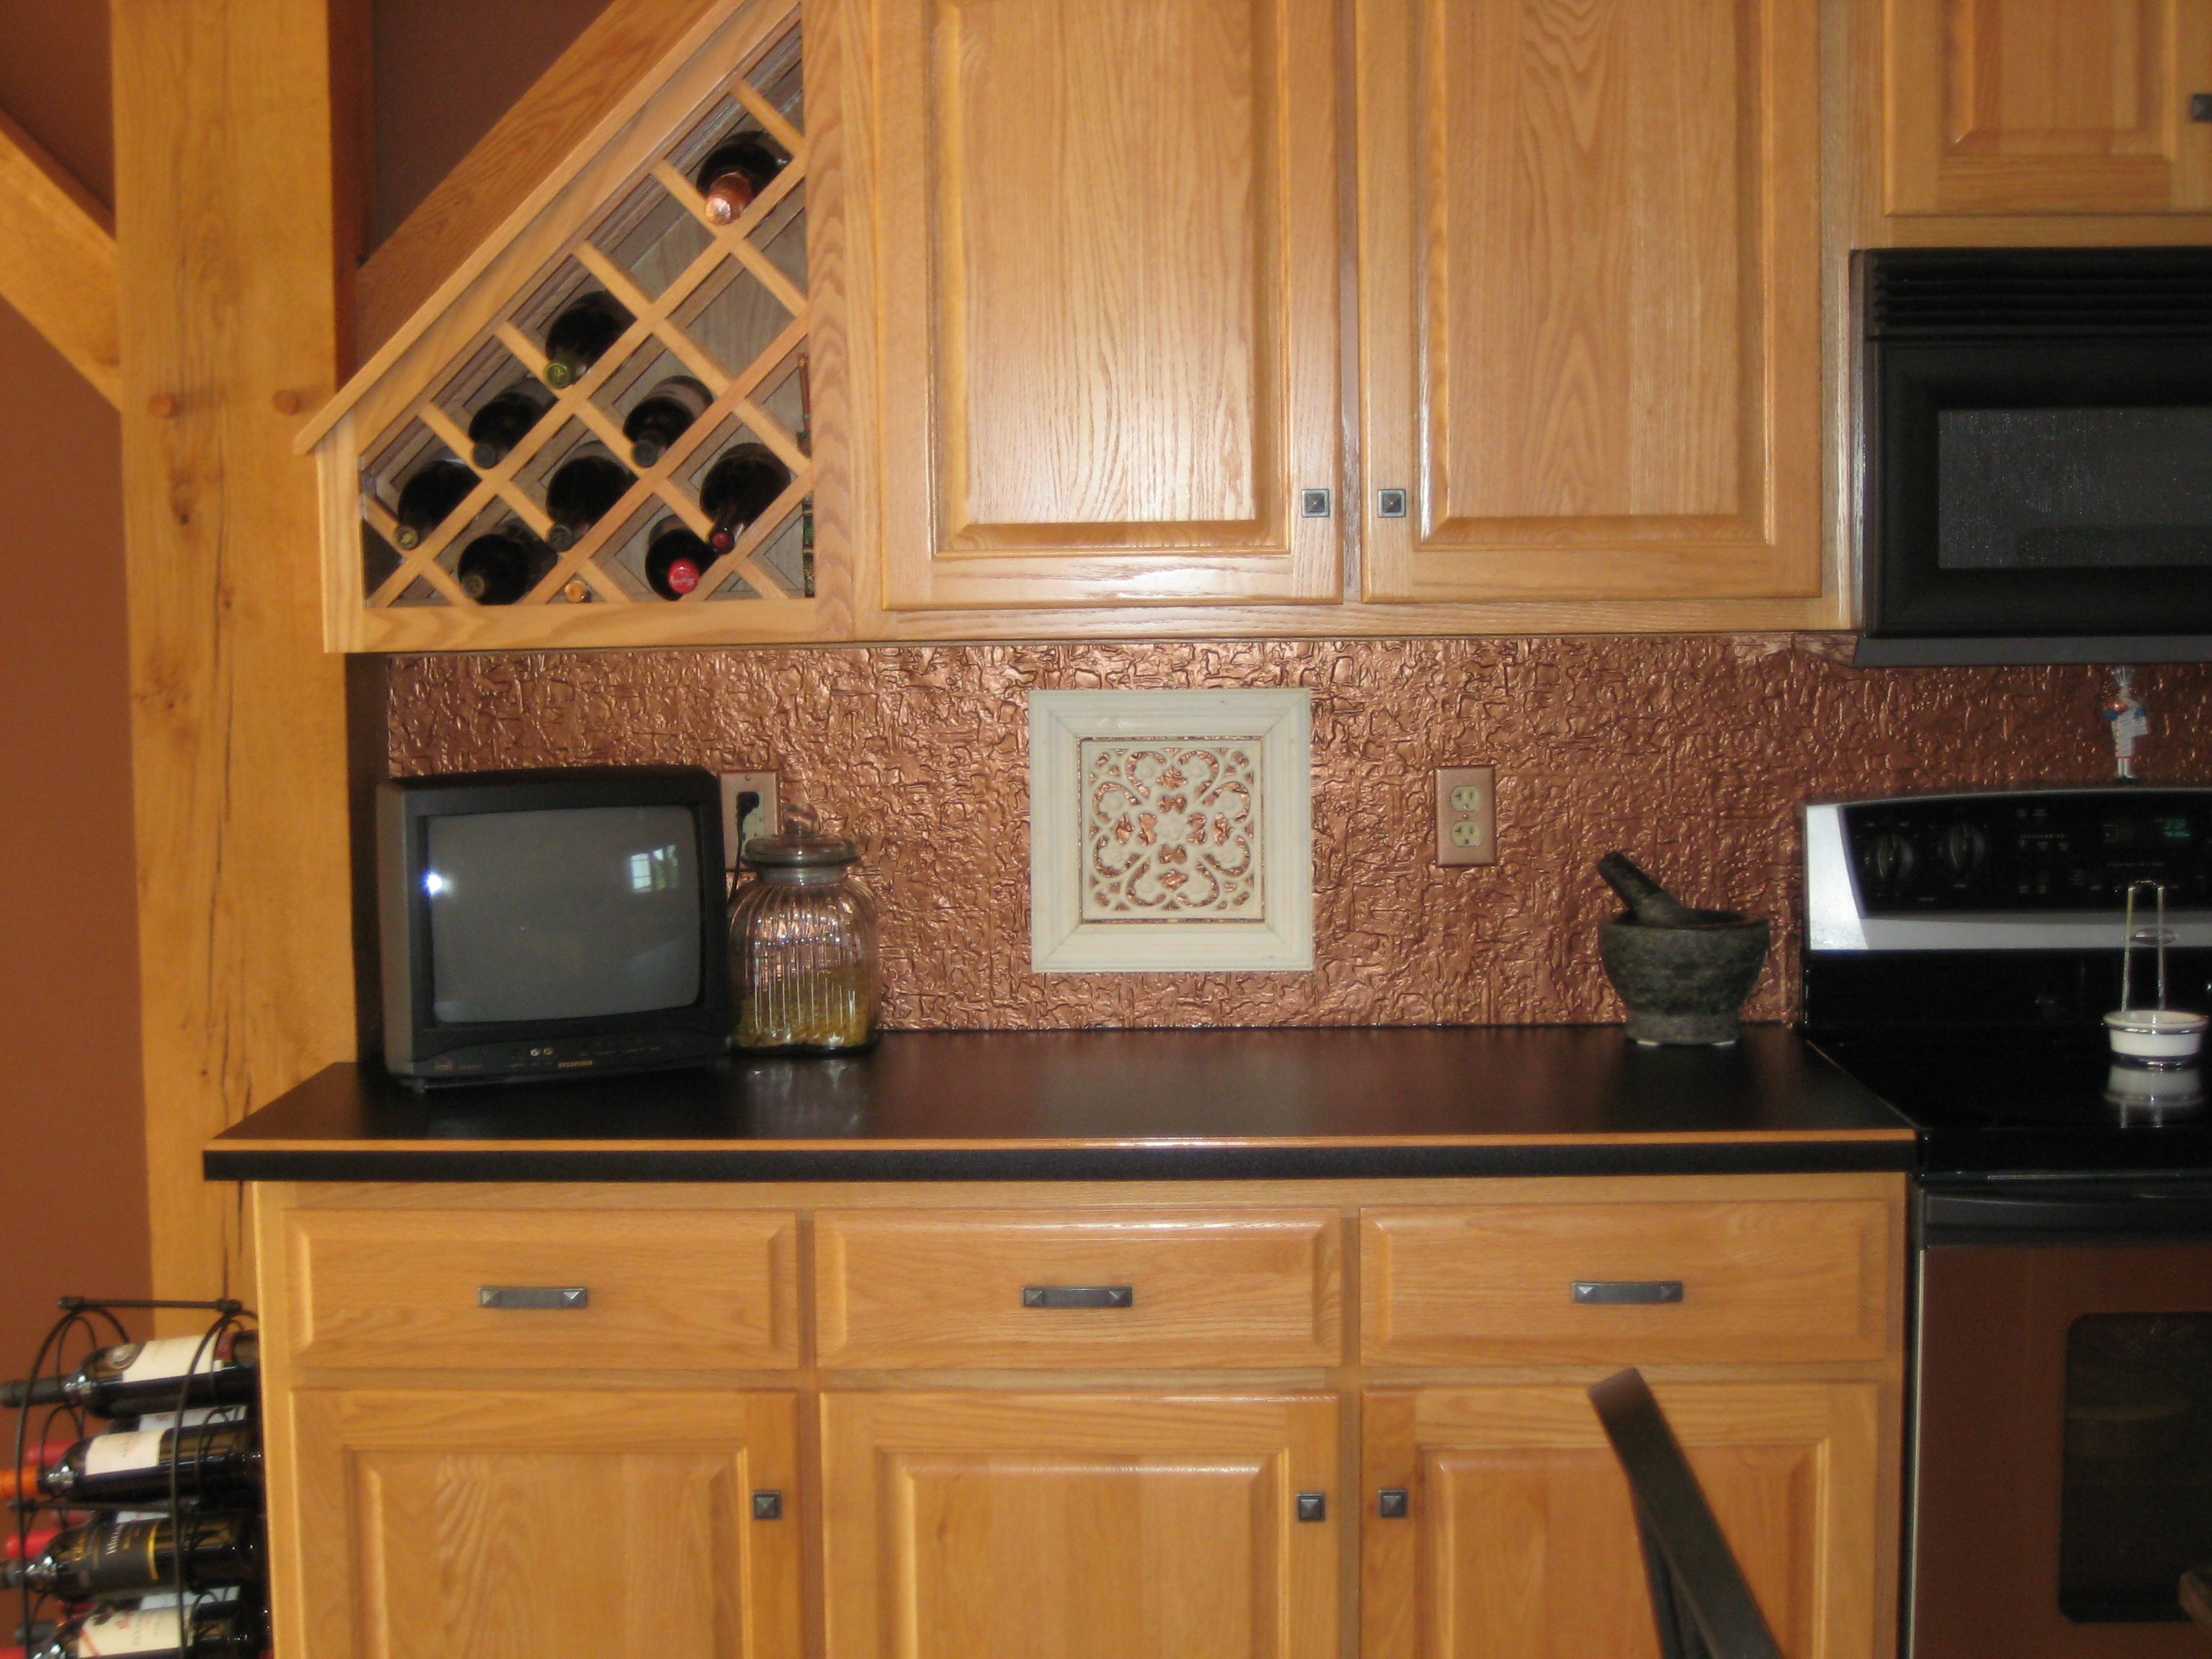 Wall Panel using PVC Backsplash for Kitchen Remodeling.